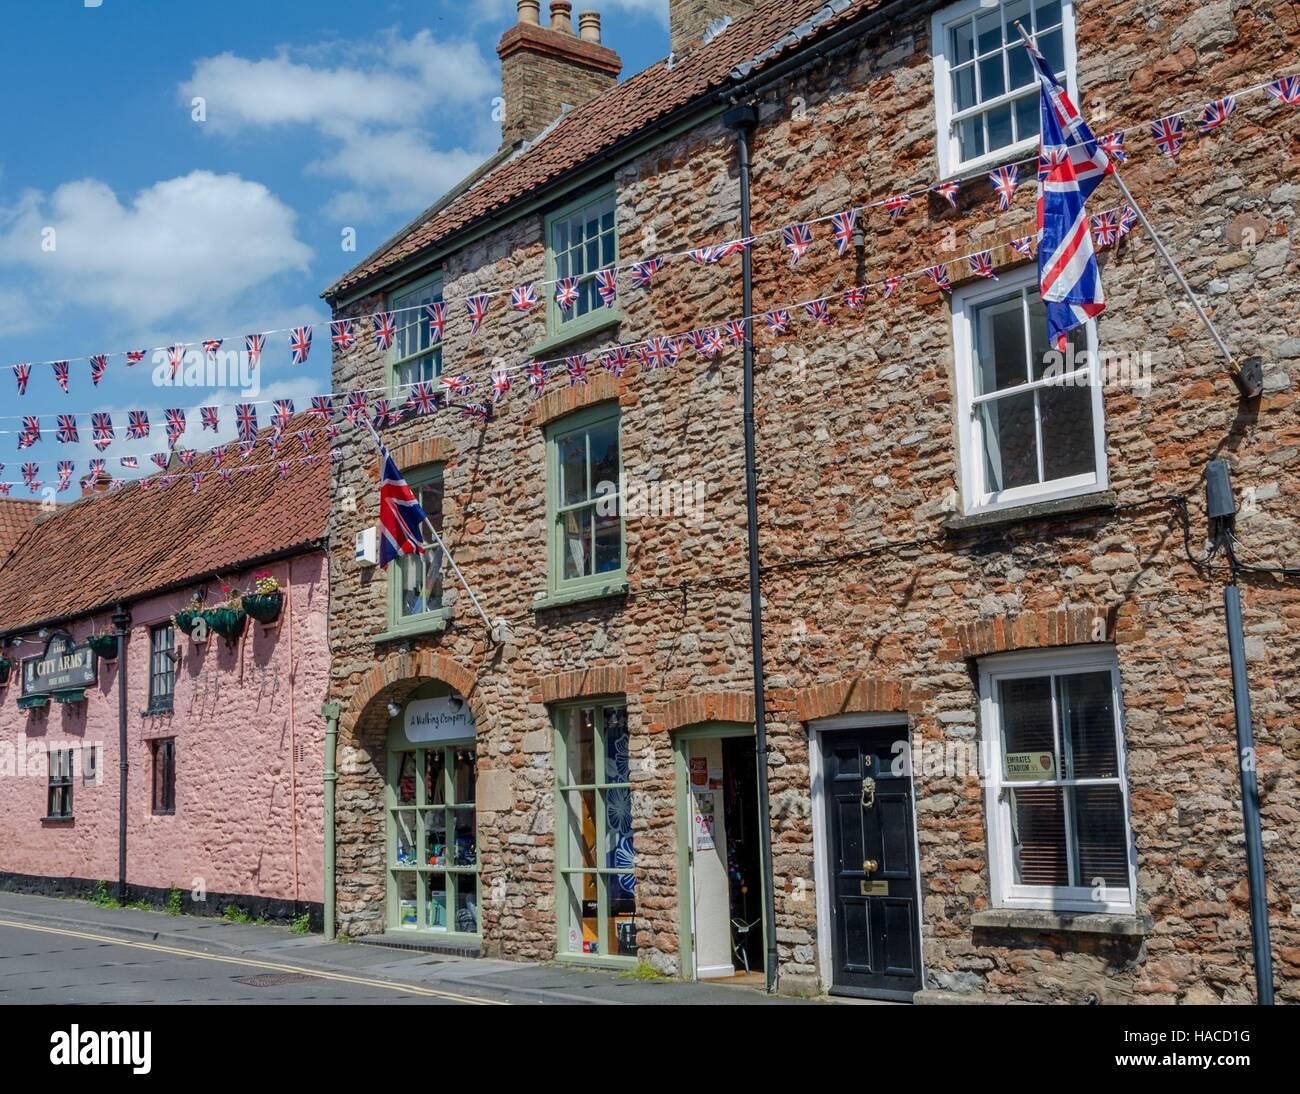 UK flags fly in the street outside the City Arms pub in Glastonbury, England - Stock Image